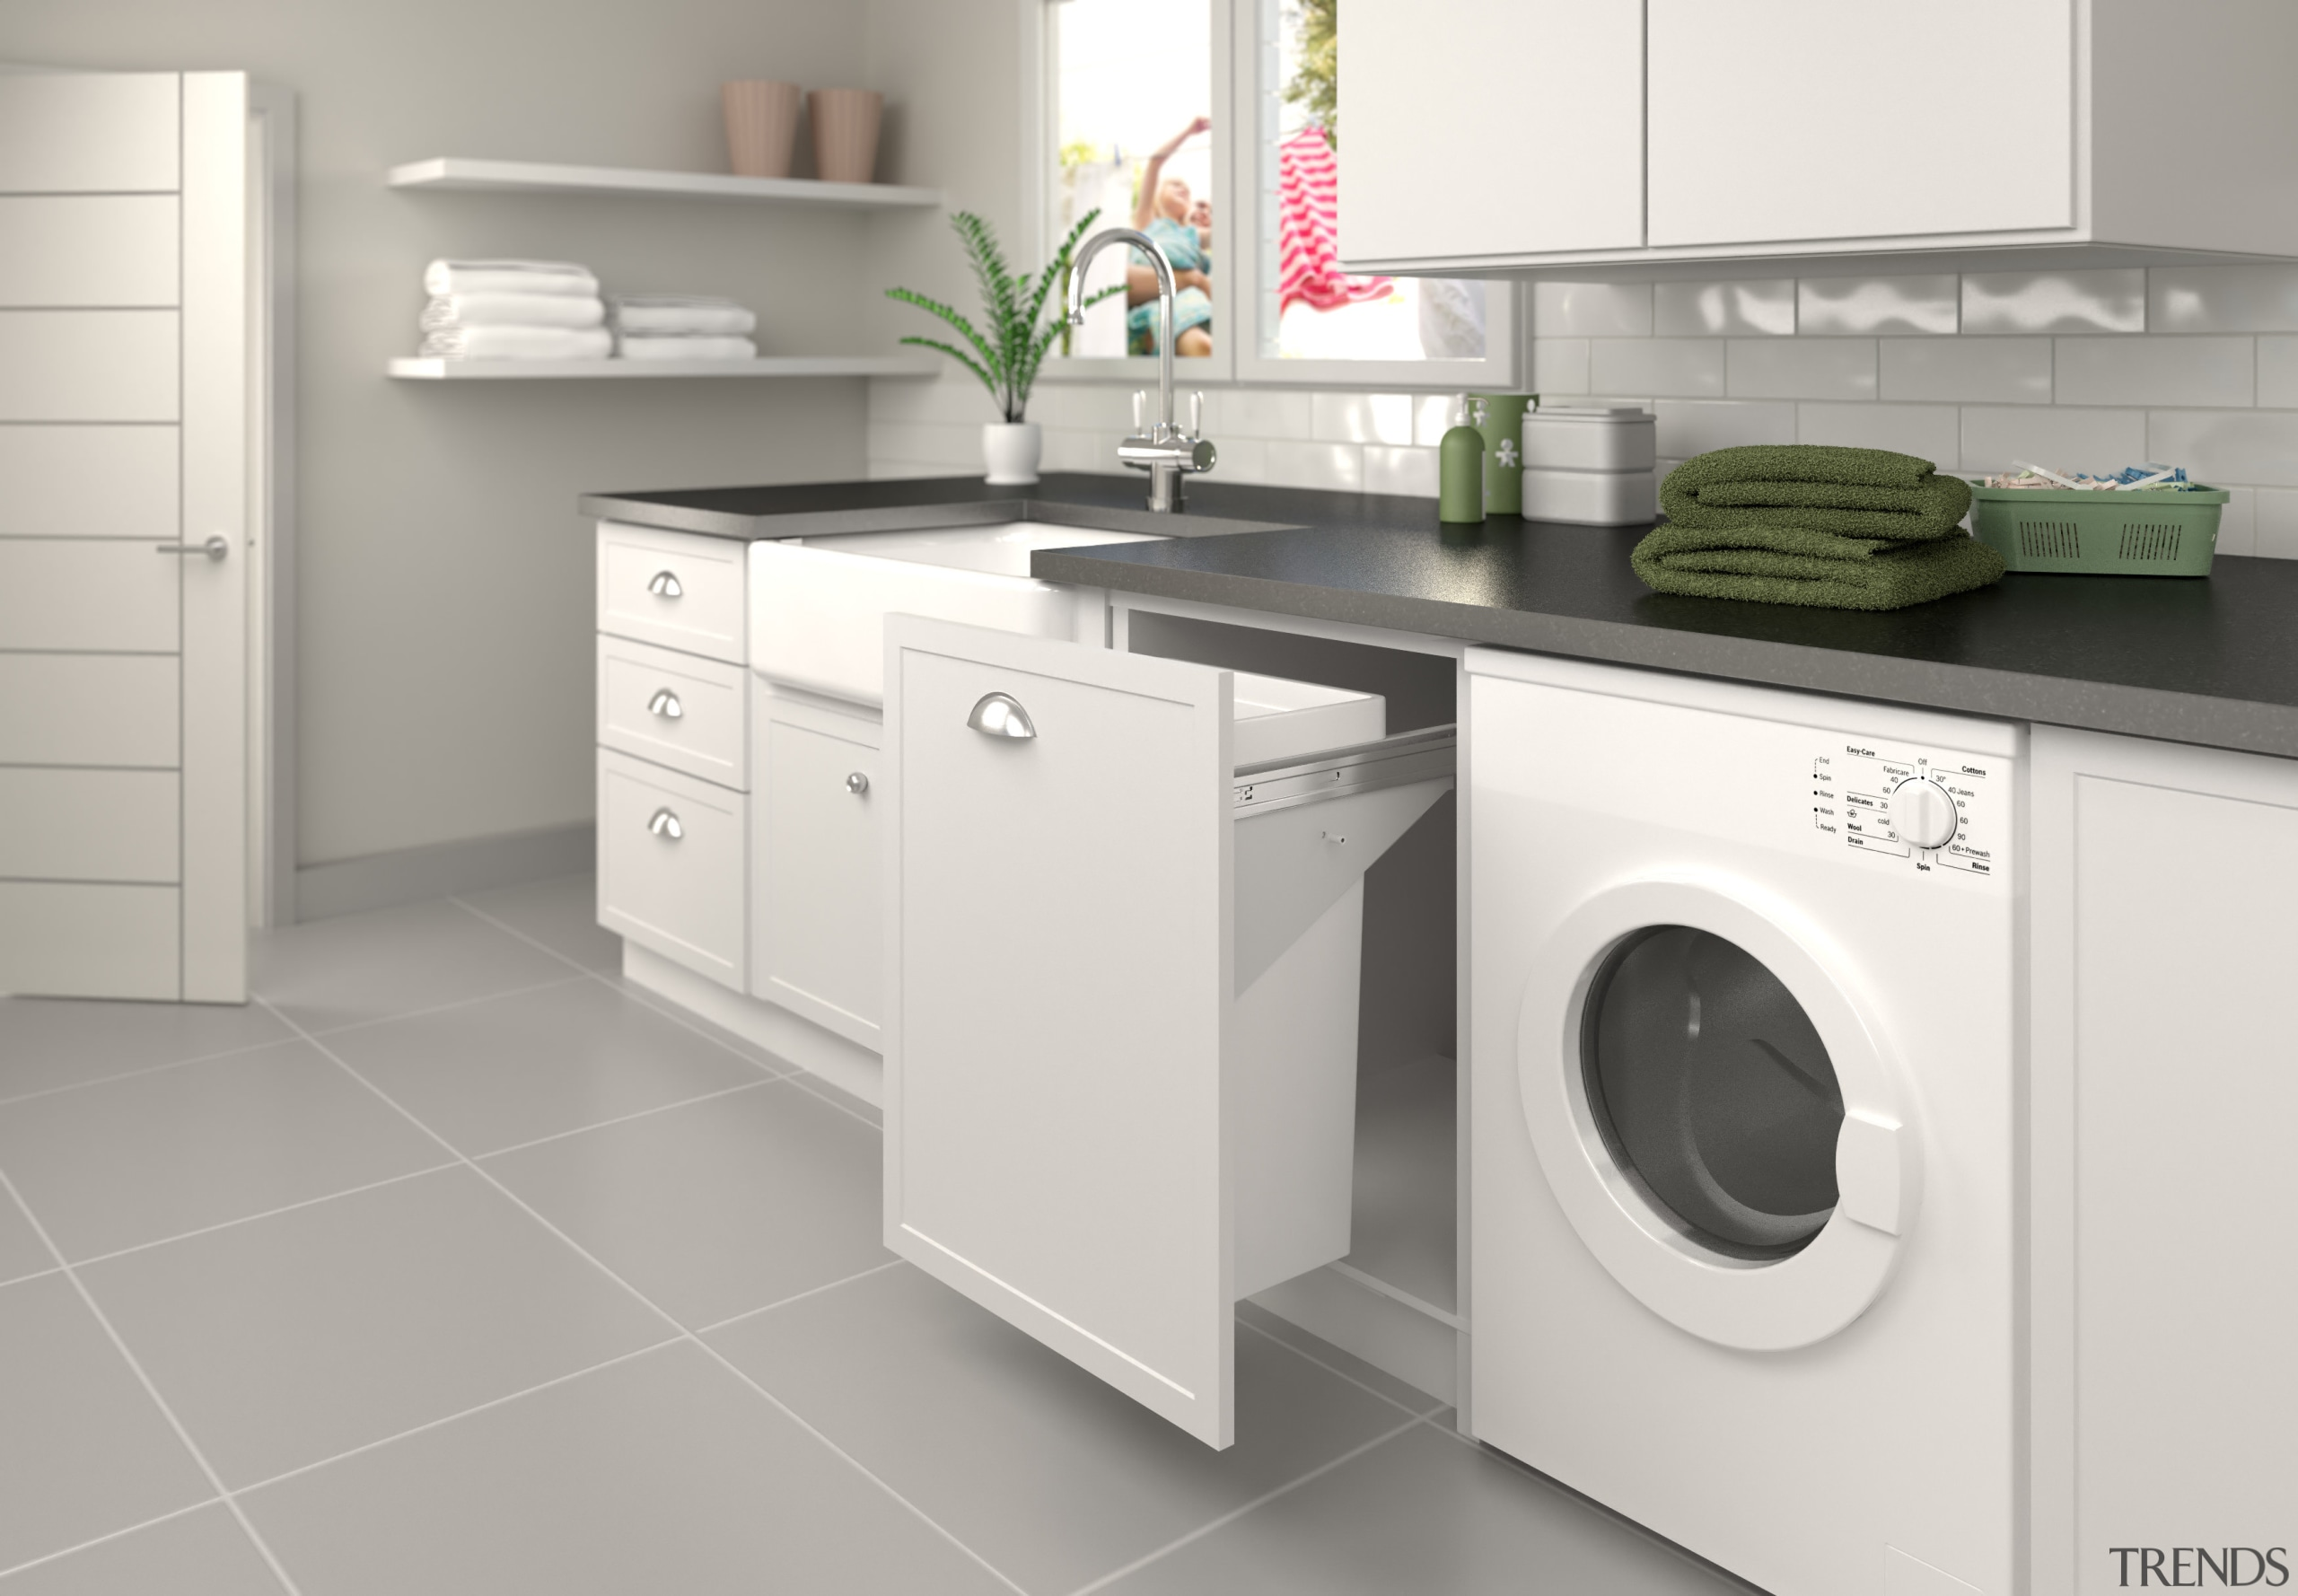 The baskets glide smoothly out of sight. - clothes dryer, countertop, home appliance, kitchen, laundry, laundry room, major appliance, product, product design, room, washing machine, white